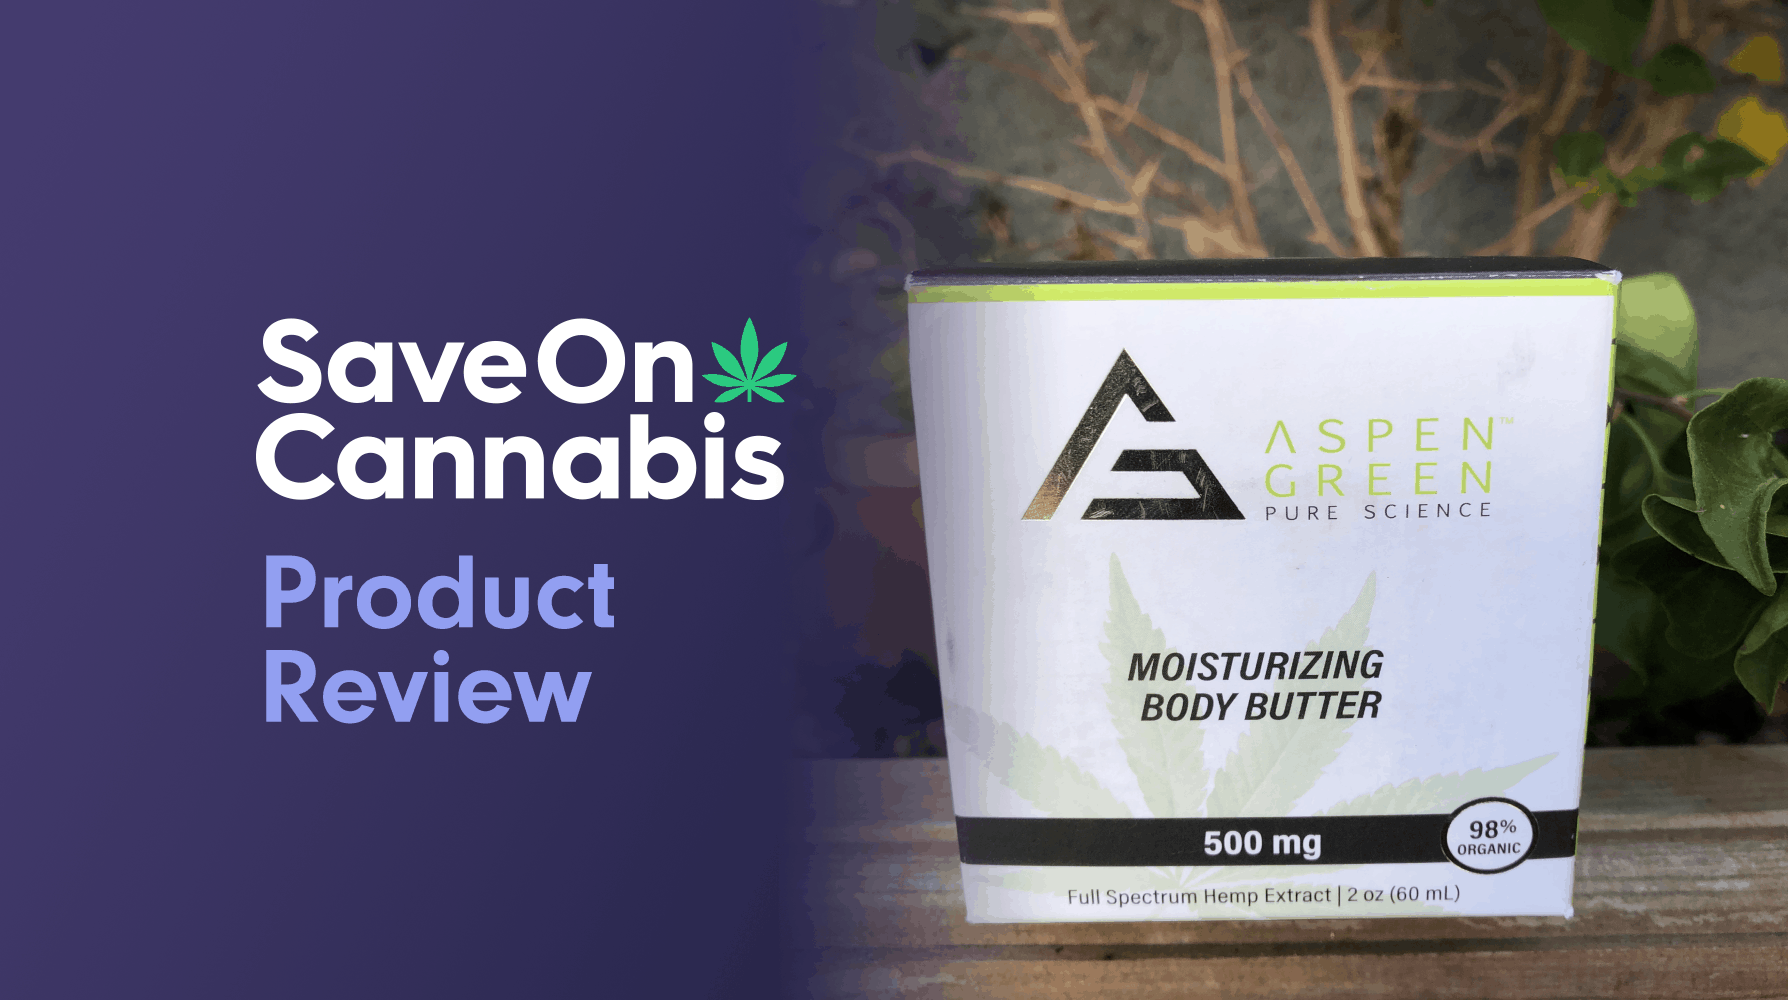 aspen green moisturizing body butter save on cannabis review website